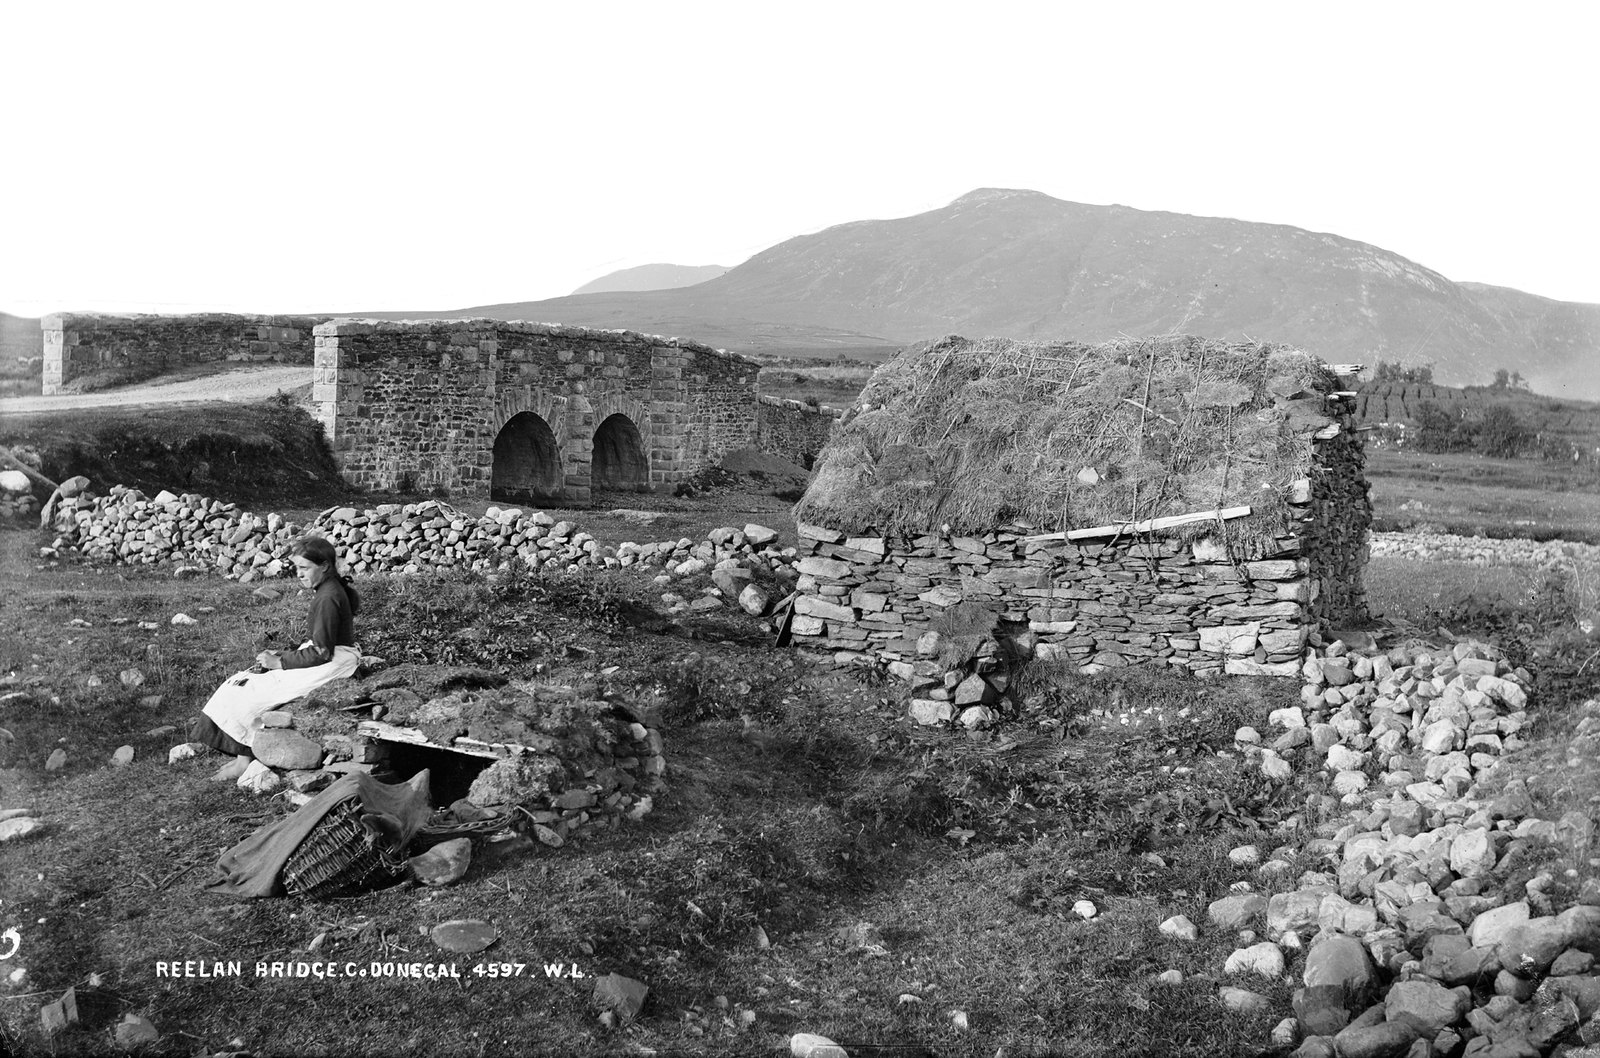 """Reelan Bridge, Lifford"" is actually the ""Dry Arch"" in Straboy, Co Donegal 